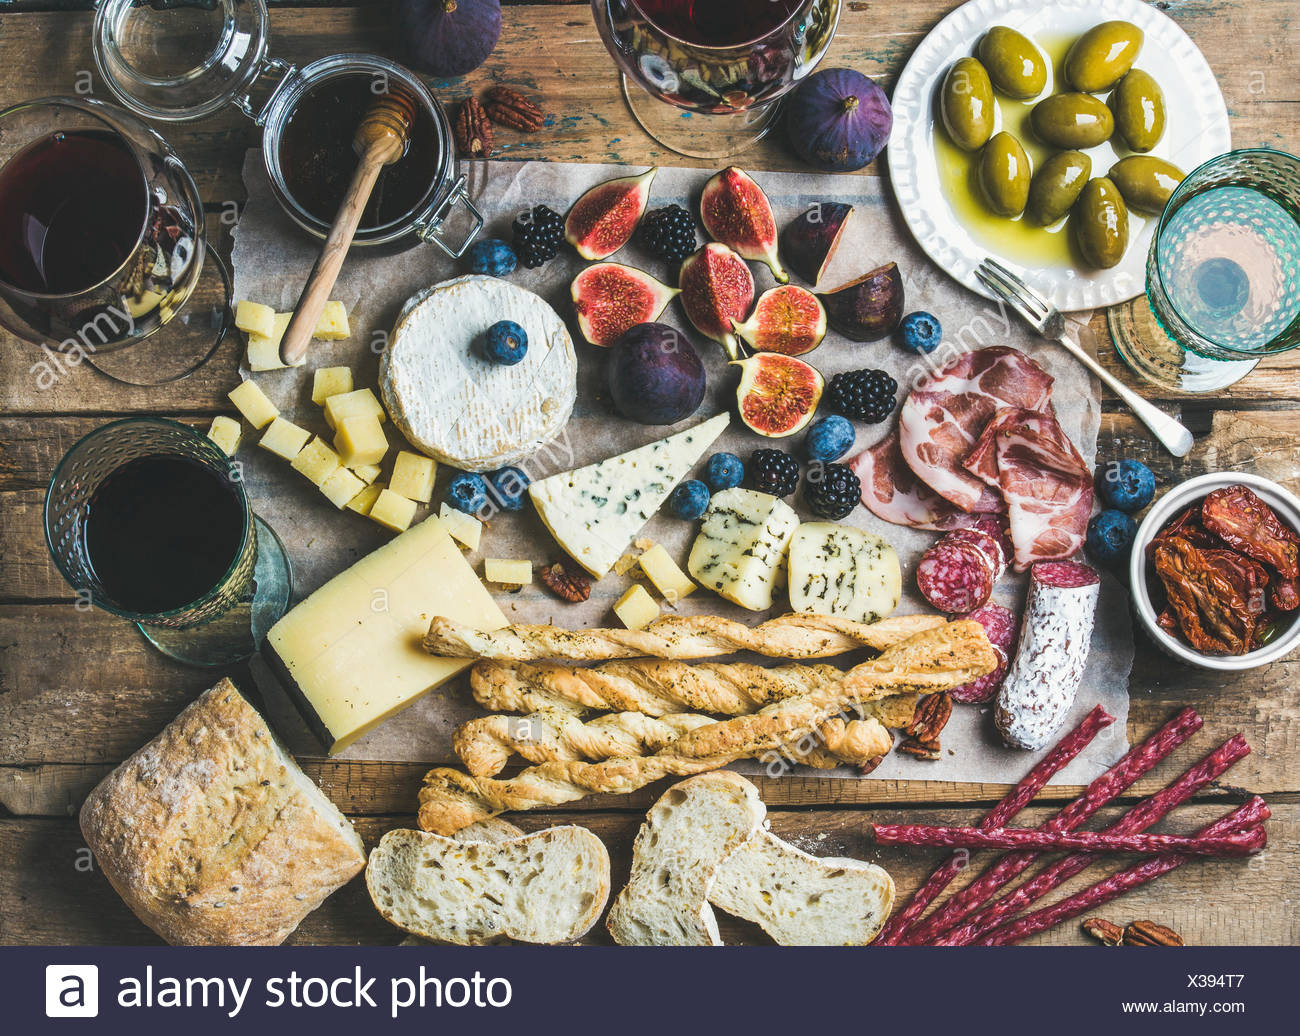 Wine and snack set with various wines in glasses, meat variety, ciabatta, sun-dried tomatoes, honey, green olives, figs, nuts an - Stock Image